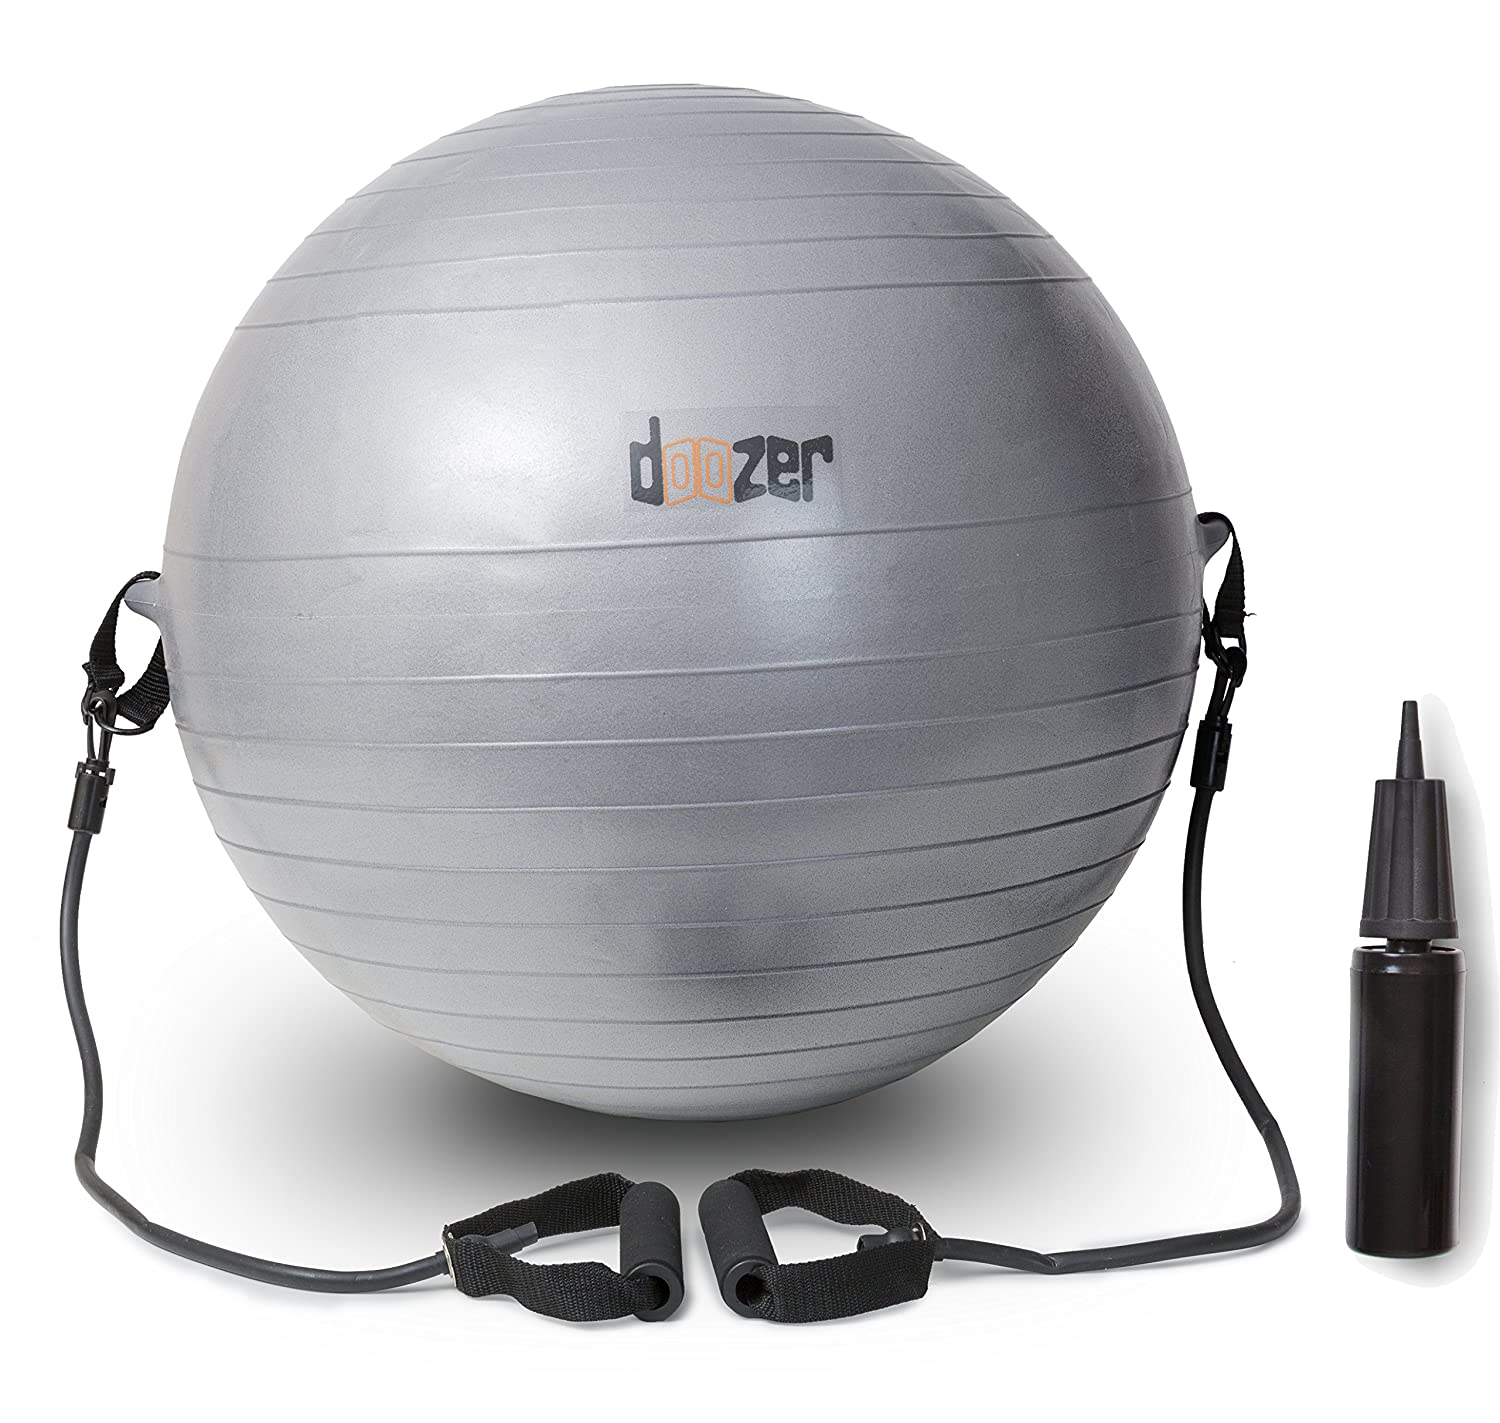 Exercise Ball W/ Removable Resistance Bands. For Pilates, Yoga, Core Strength, Balance & More! For Home, Gym, Office, Outdoor & Indoor Fitness. Incl. Ball, 2 straps + handles, 3 Plugs, Pump